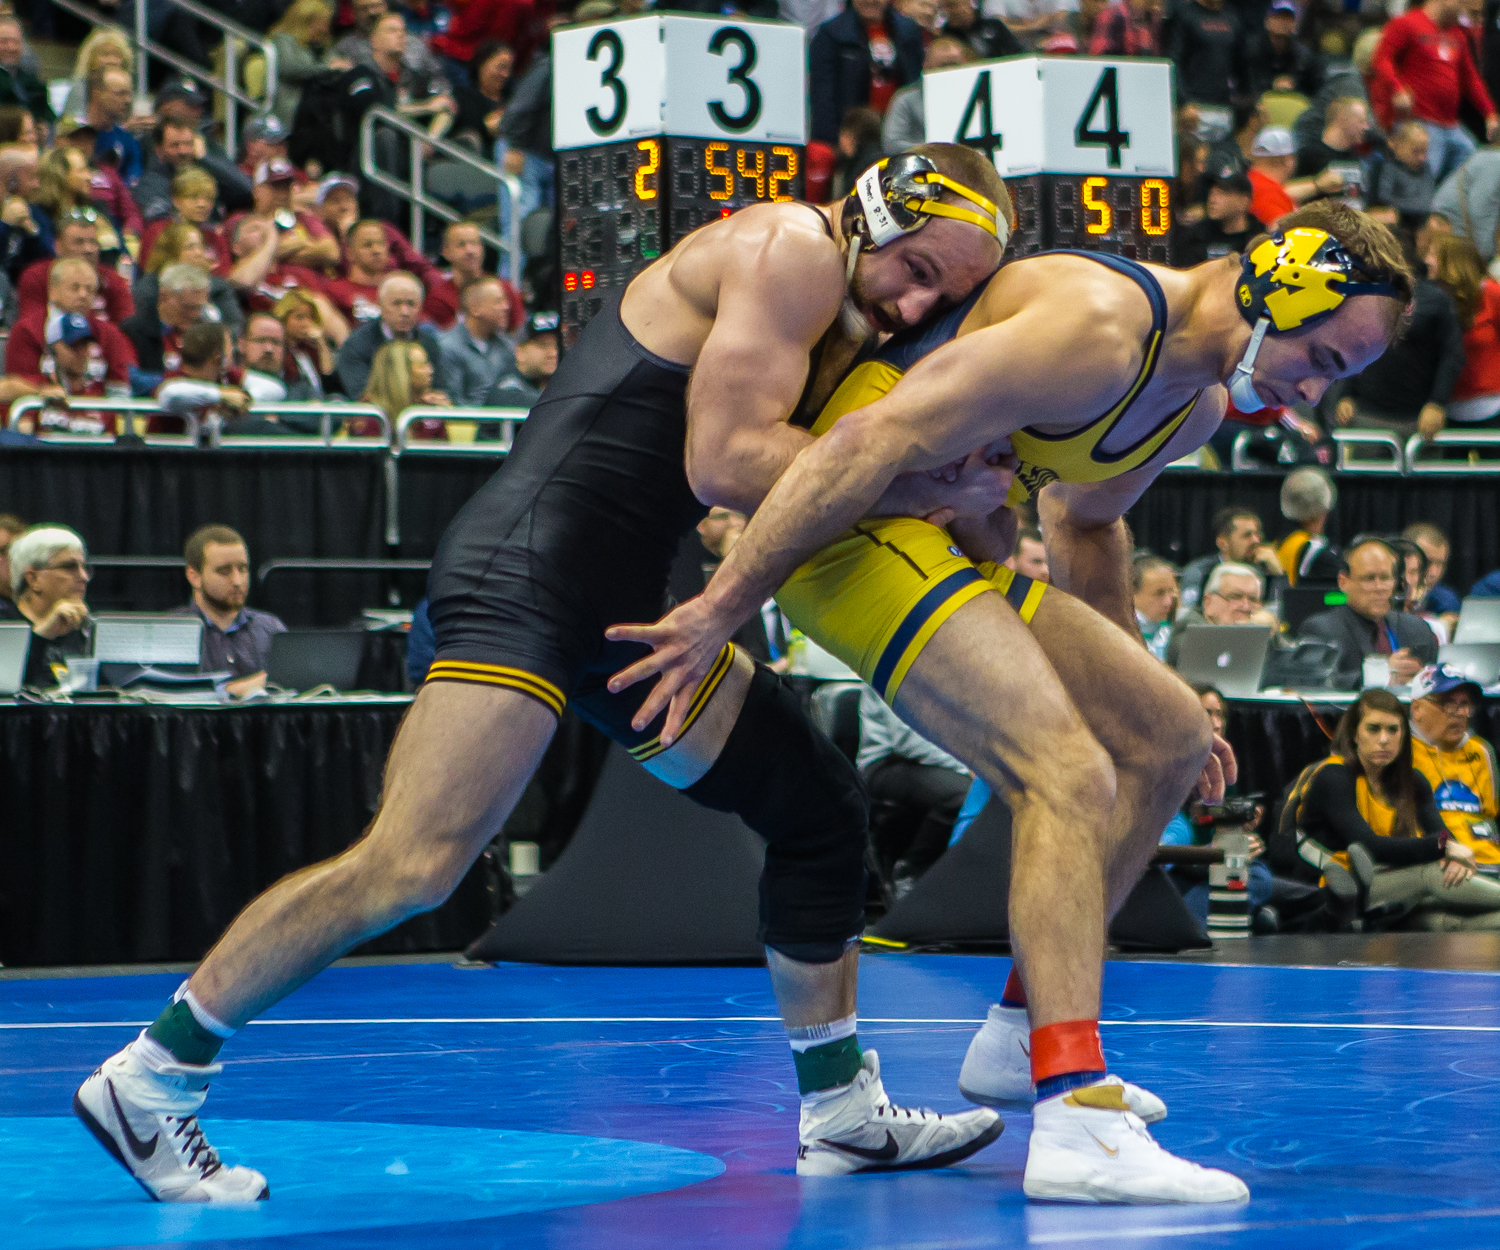 Iowa%E2%80%99s+165-pound+Alex+Marinelli+wrestles+Michigan%E2%80%99s+Logan+Massa+during+the+fourth+session+of+the+2019+NCAA+D1+Wrestling+Championships+at+PPG+Paints+Arena+in+Pittsburgh%2C+PA+on+Friday%2C+March+22%2C+2019.+Marinelli+won+by+decision%2C+5-3.